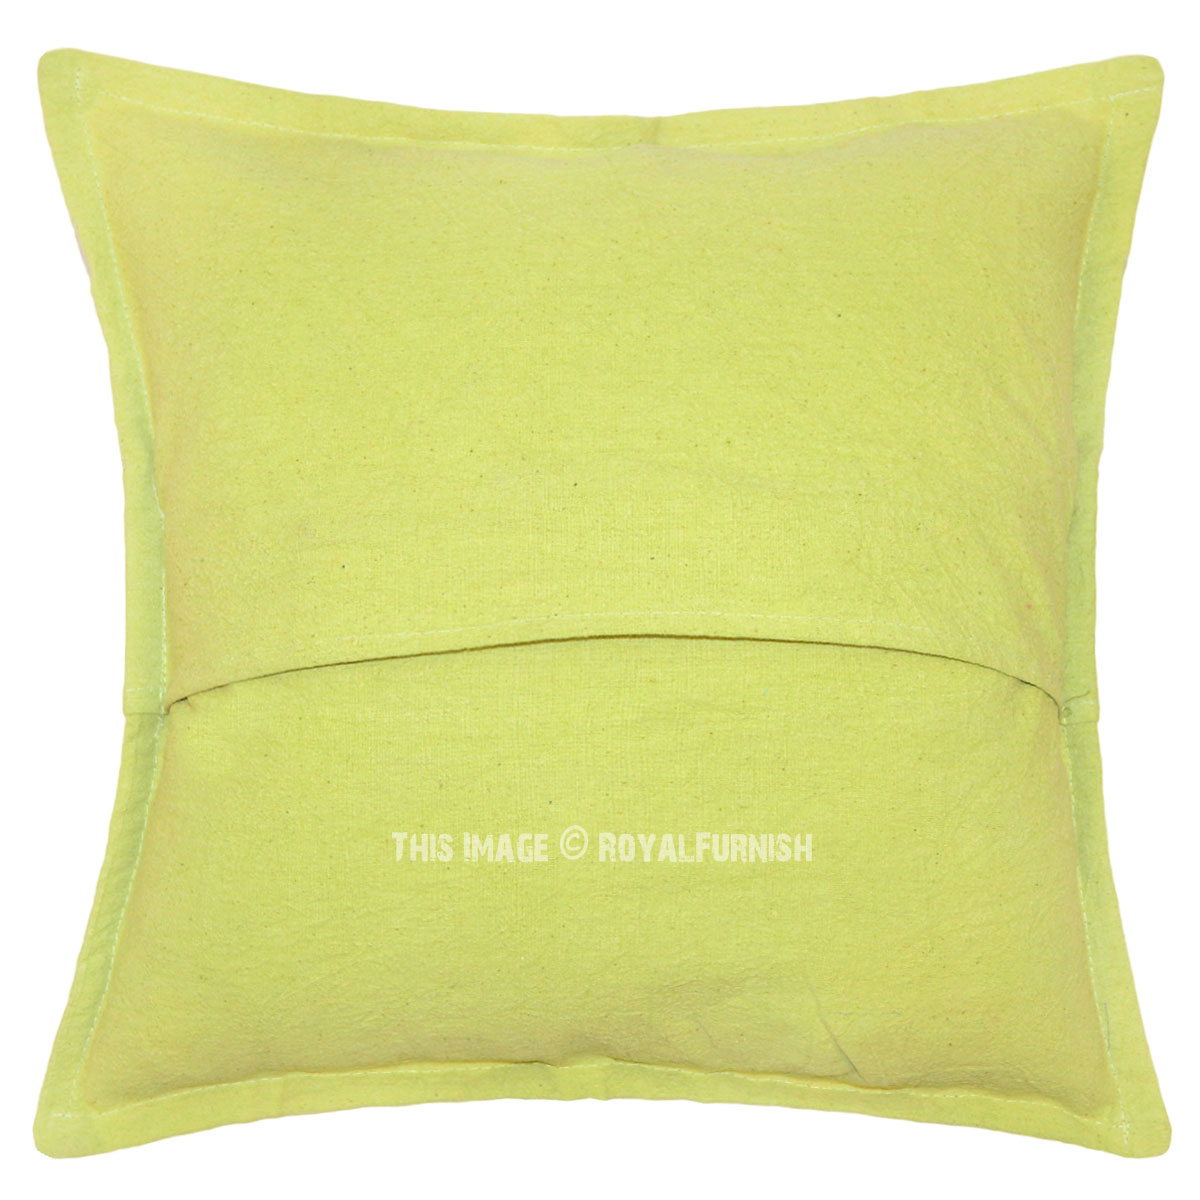 Light Green Mirror Embroidered Cotton Throw Accent Pillow